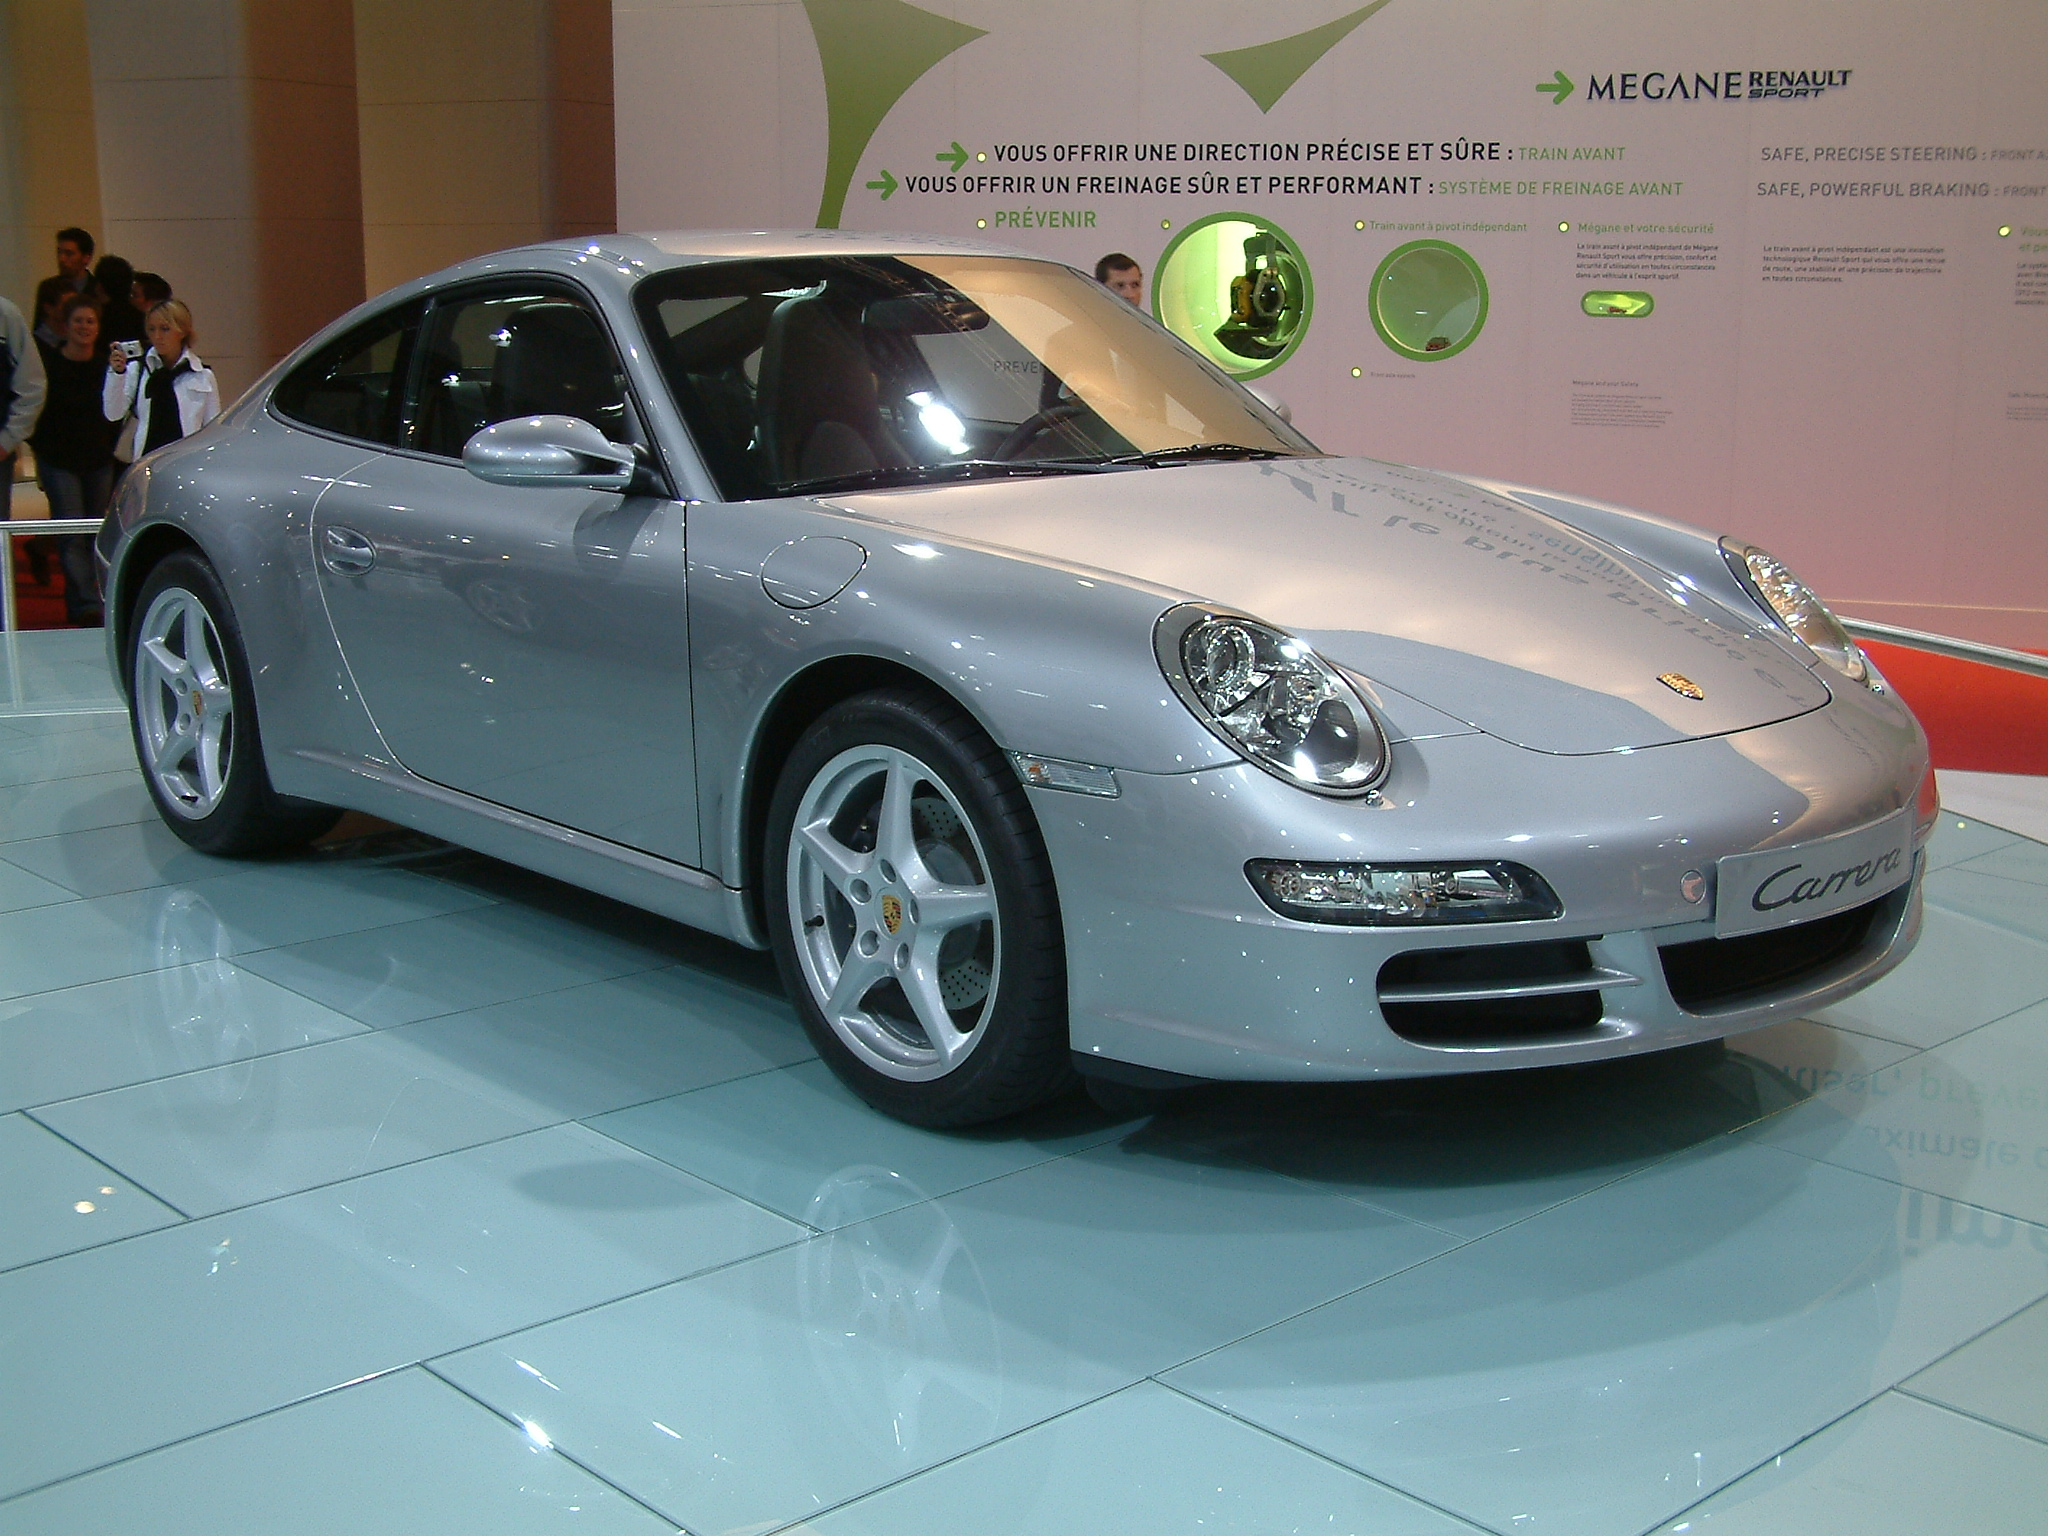 2004 silver porsche 911 carrera type. Black Bedroom Furniture Sets. Home Design Ideas